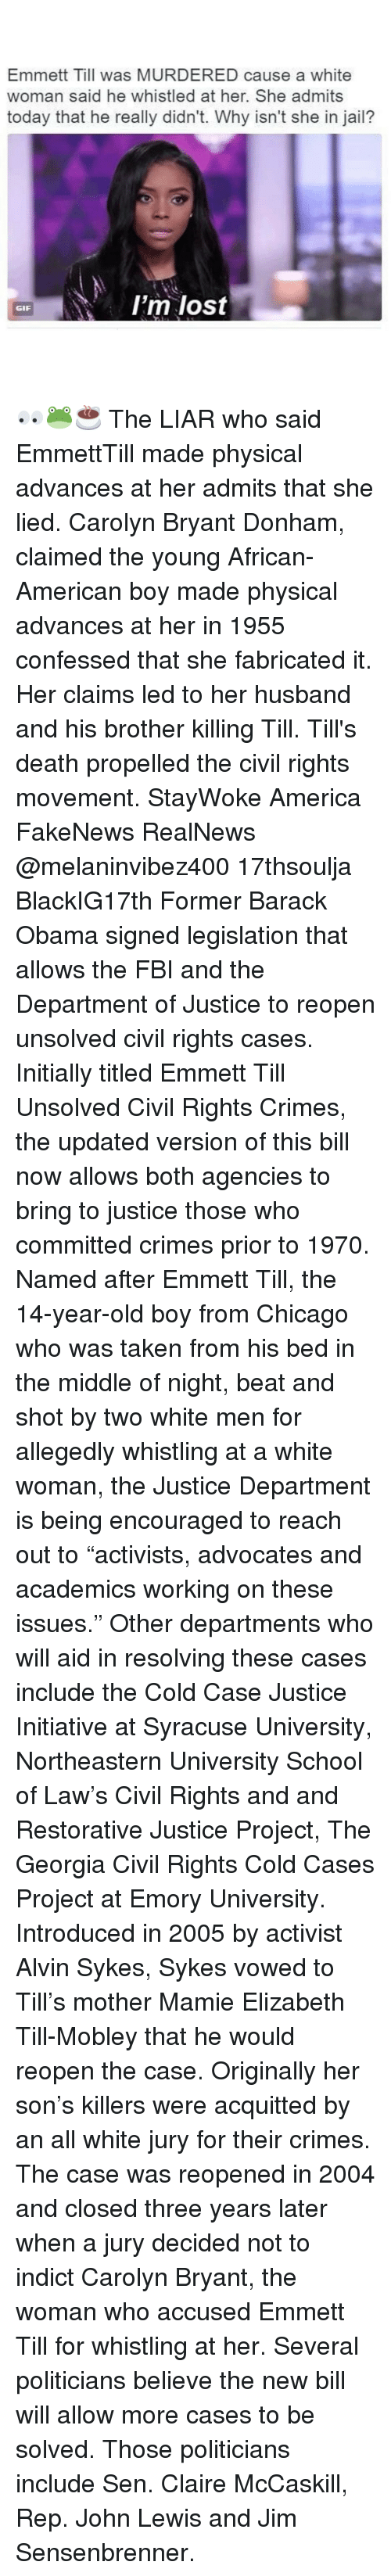 """Initialisms: Emmett Till was MURDERED cause a white  woman said he whistled at her. She admits  today that he really didn't. Why isn't she in jail?  I'm lost  GIF 👀🐸☕️ The LIAR who said EmmettTill made physical advances at her admits that she lied. Carolyn Bryant Donham, claimed the young African-American boy made physical advances at her in 1955 confessed that she fabricated it. Her claims led to her husband and his brother killing Till. Till's death propelled the civil rights movement. StayWoke America FakeNews RealNews @melaninvibez400 17thsoulja BlackIG17th Former Barack Obama signed legislation that allows the FBI and the Department of Justice to reopen unsolved civil rights cases. Initially titled Emmett Till Unsolved Civil Rights Crimes, the updated version of this bill now allows both agencies to bring to justice those who committed crimes prior to 1970. Named after Emmett Till, the 14-year-old boy from Chicago who was taken from his bed in the middle of night, beat and shot by two white men for allegedly whistling at a white woman, the Justice Department is being encouraged to reach out to """"activists, advocates and academics working on these issues."""" Other departments who will aid in resolving these cases include the Cold Case Justice Initiative at Syracuse University, Northeastern University School of Law's Civil Rights and and Restorative Justice Project, The Georgia Civil Rights Cold Cases Project at Emory University. Introduced in 2005 by activist Alvin Sykes, Sykes vowed to Till's mother Mamie Elizabeth Till-Mobley that he would reopen the case. Originally her son's killers were acquitted by an all white jury for their crimes. The case was reopened in 2004 and closed three years later when a jury decided not to indict Carolyn Bryant, the woman who accused Emmett Till for whistling at her. Several politicians believe the new bill will allow more cases to be solved. Those politicians include Sen. Claire McCaskill, Rep. John Lewis and Jim Sensenbrenner."""